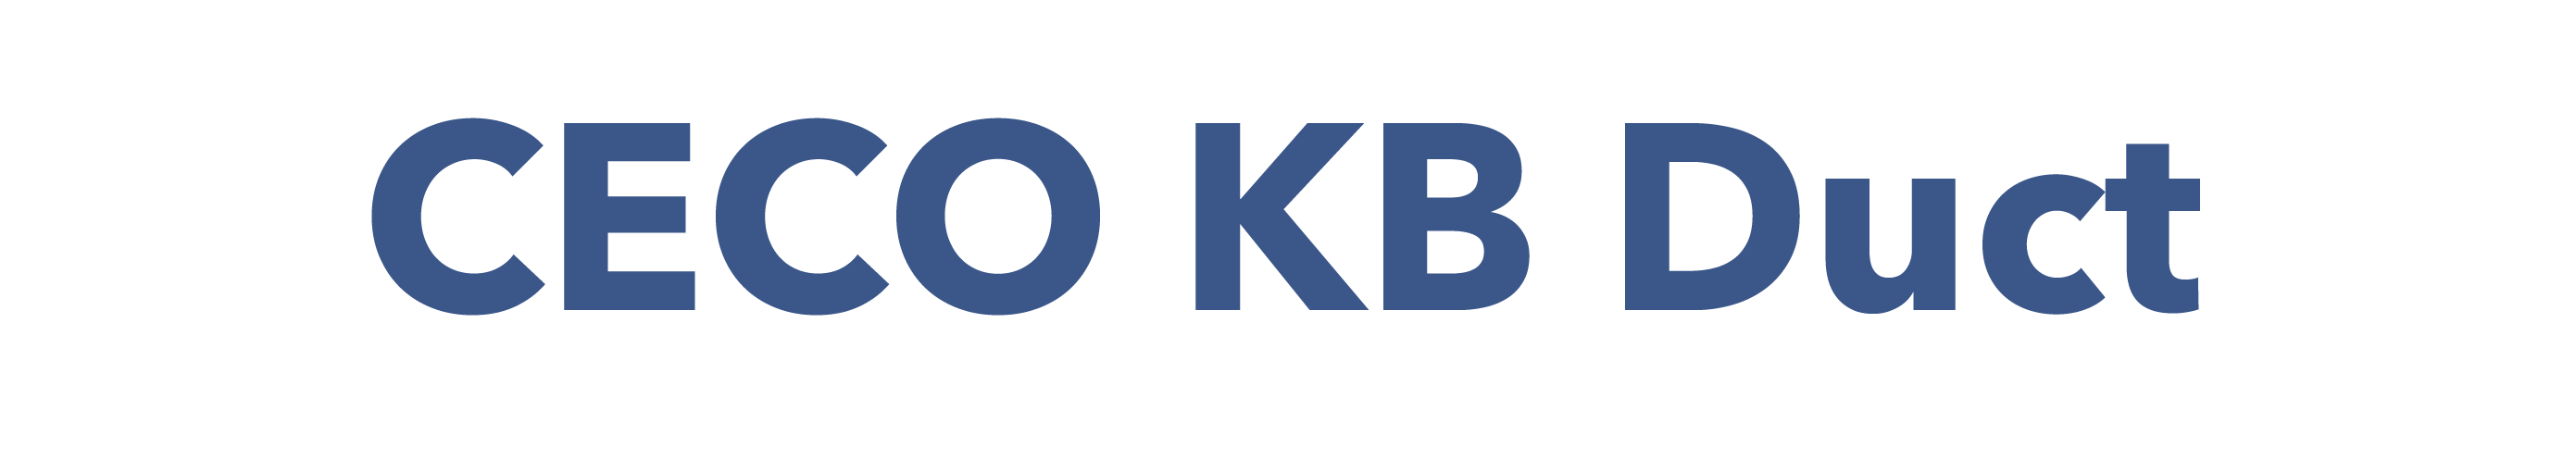 KB_Duct_Logo_Brand.png